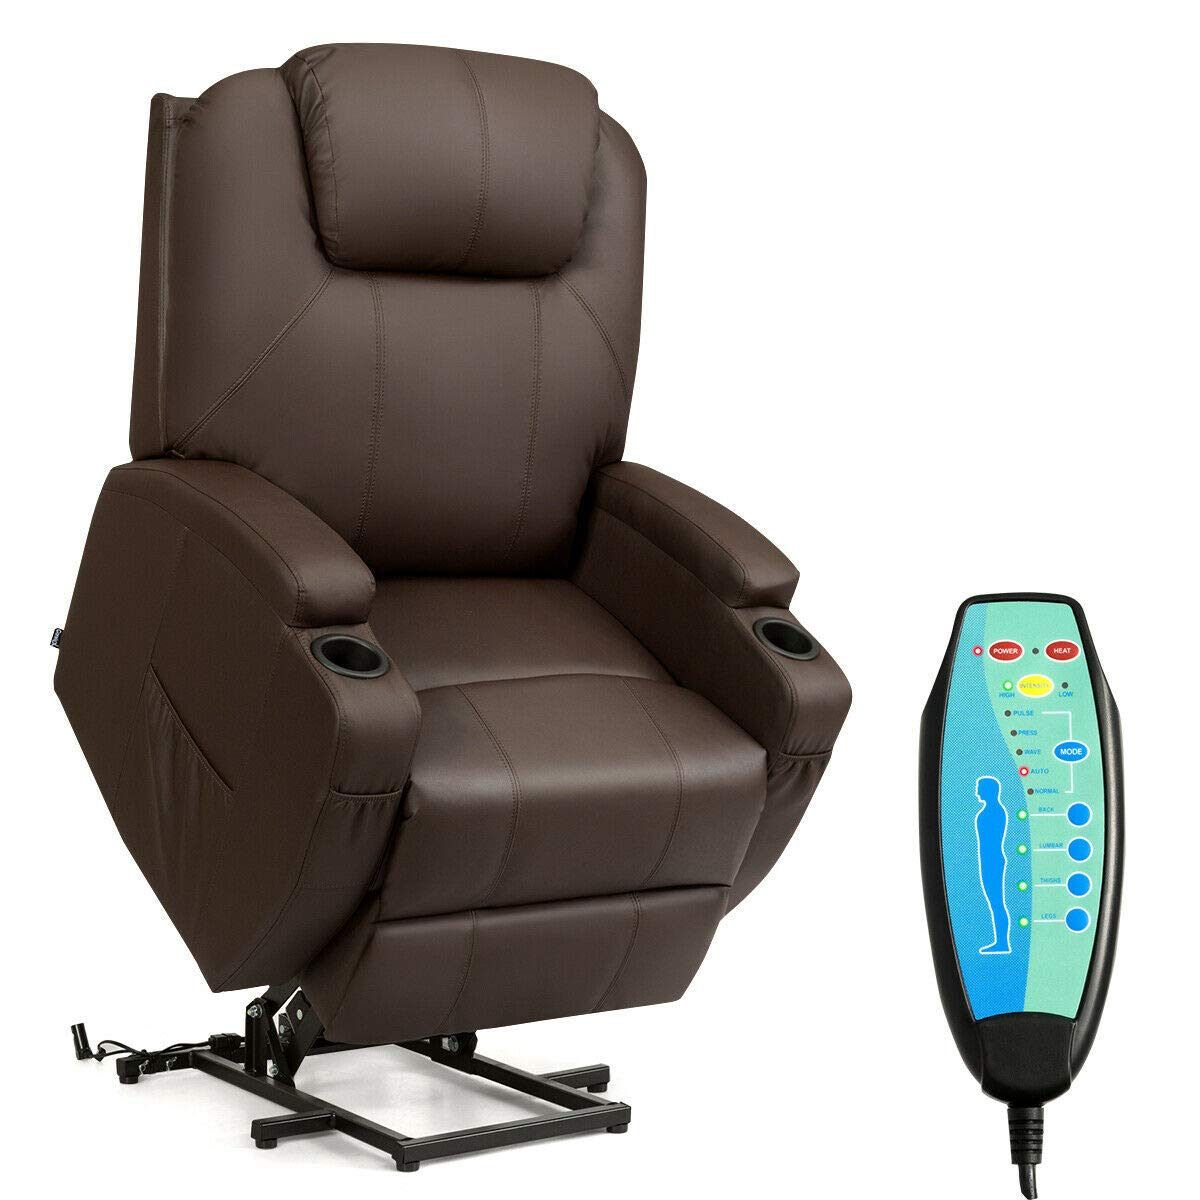 TANGKULA Massage Recliner, Deluxe Ergonomic Adjustable Design PU Leather Heated Vibrating, with Cup Holders, Side Pouch, Remote Control, for Home Theater, Recliner Chair Seat